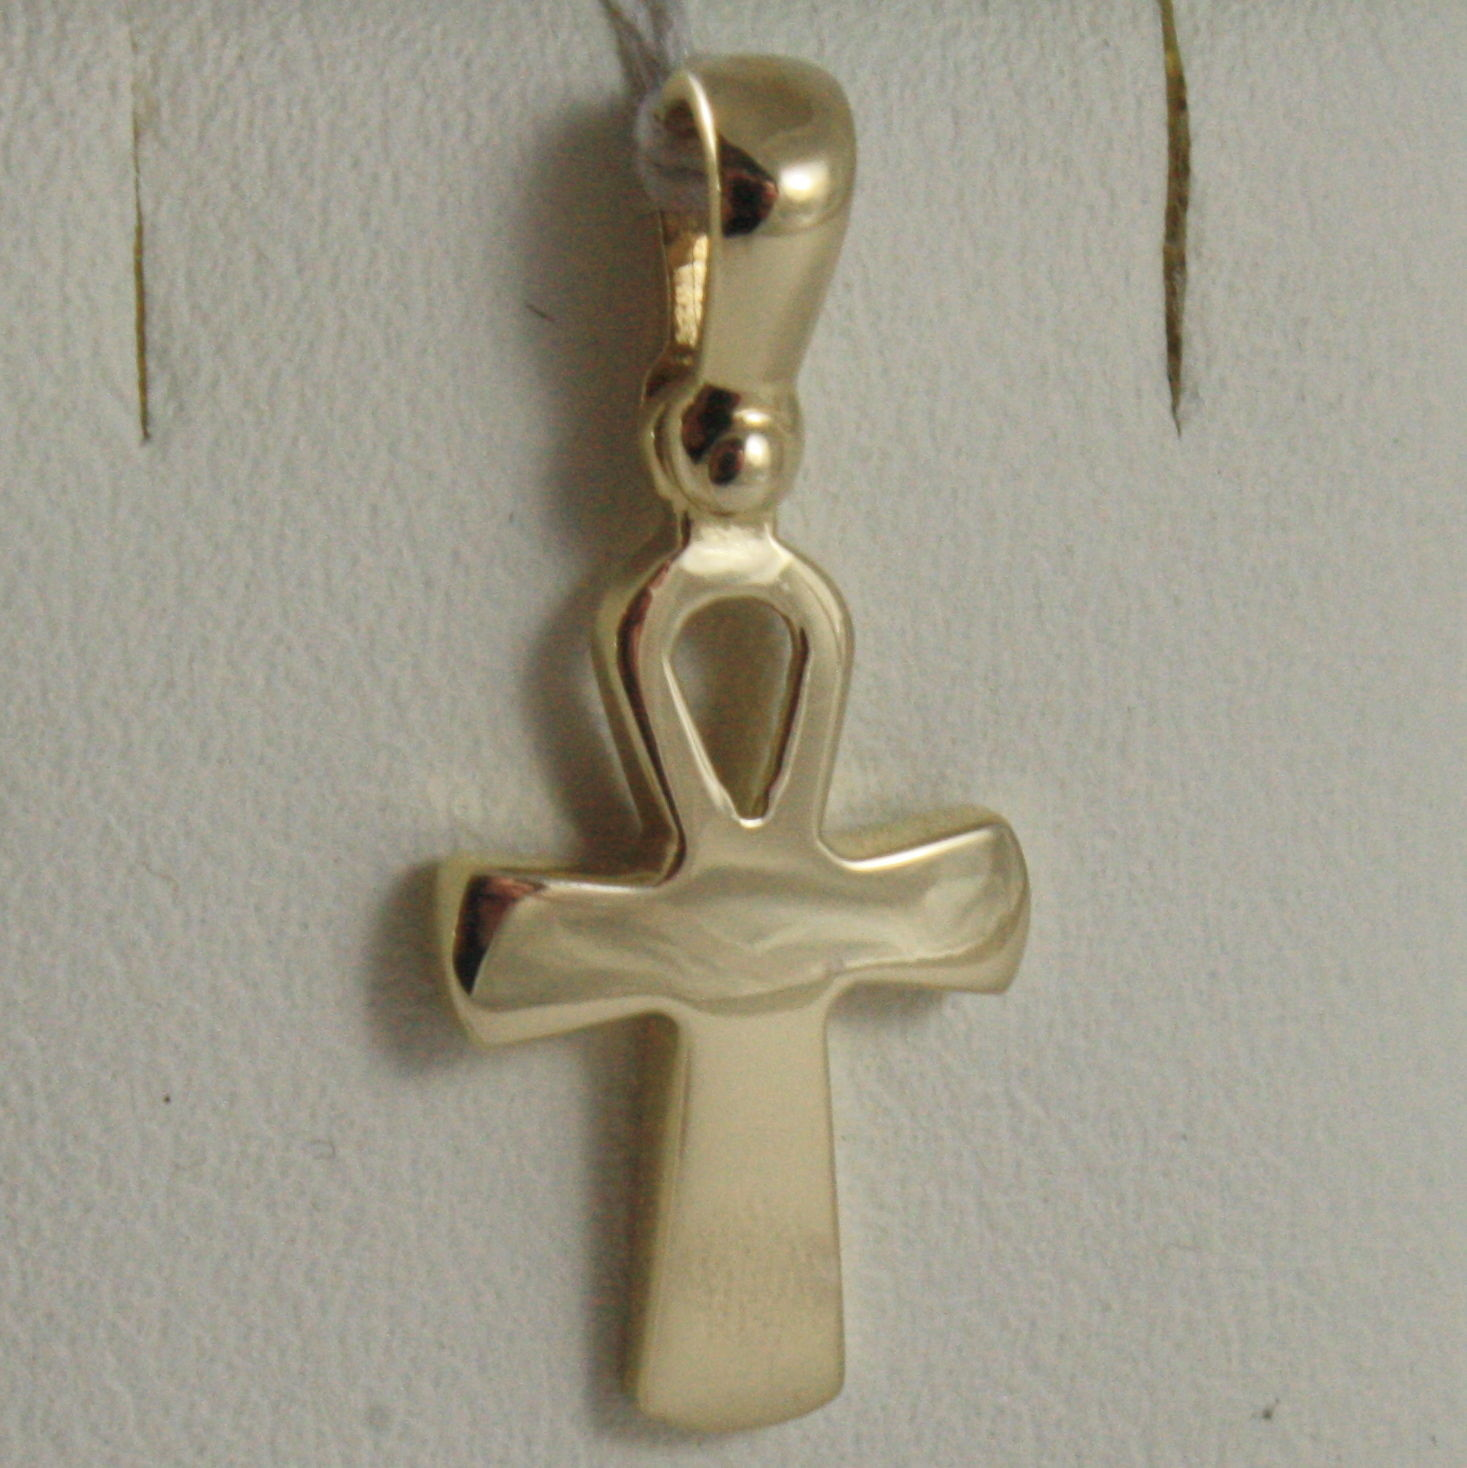 SOLID 18K YELLOW GOLD CROSS, CROSS OF LIFE, ANKH, SHINY, 0.87 INCH MADE IN ITALY